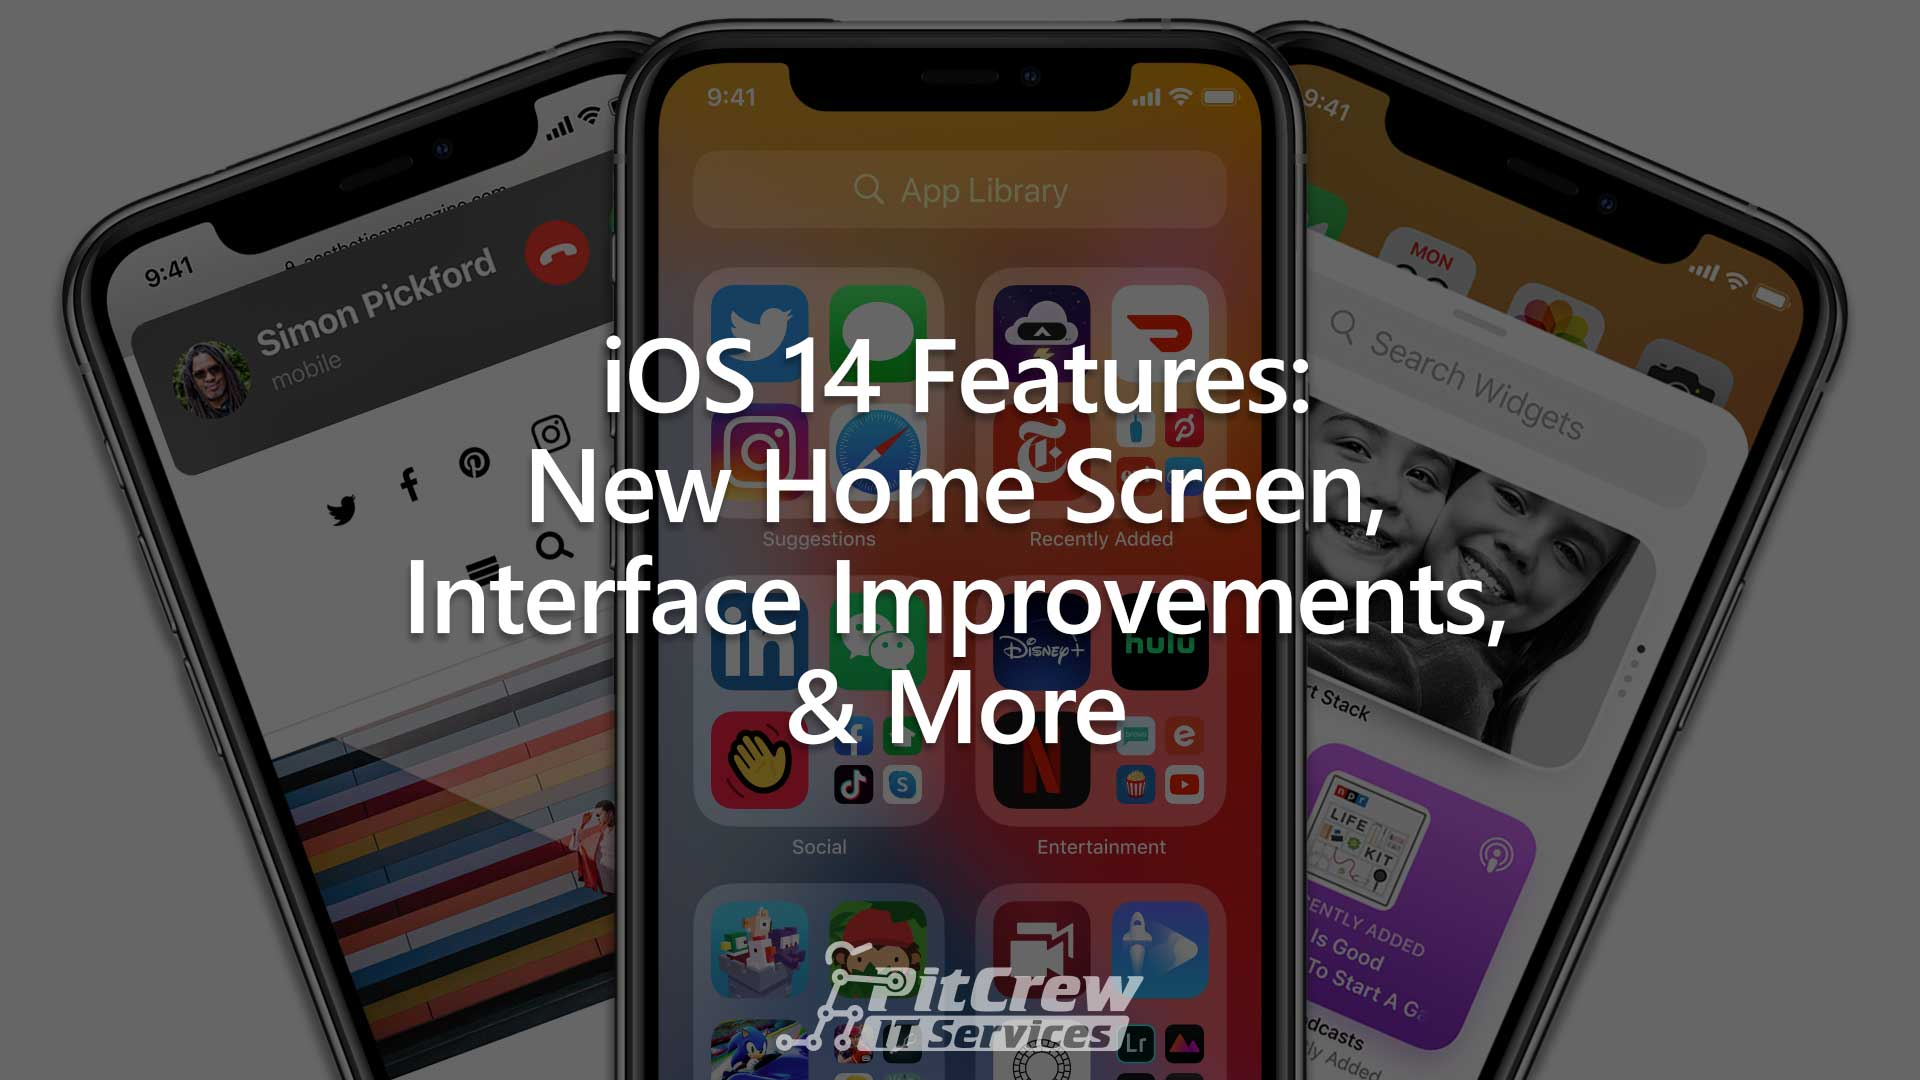 iOS 14 Features: New Home Screen, Interface Improvements, & More